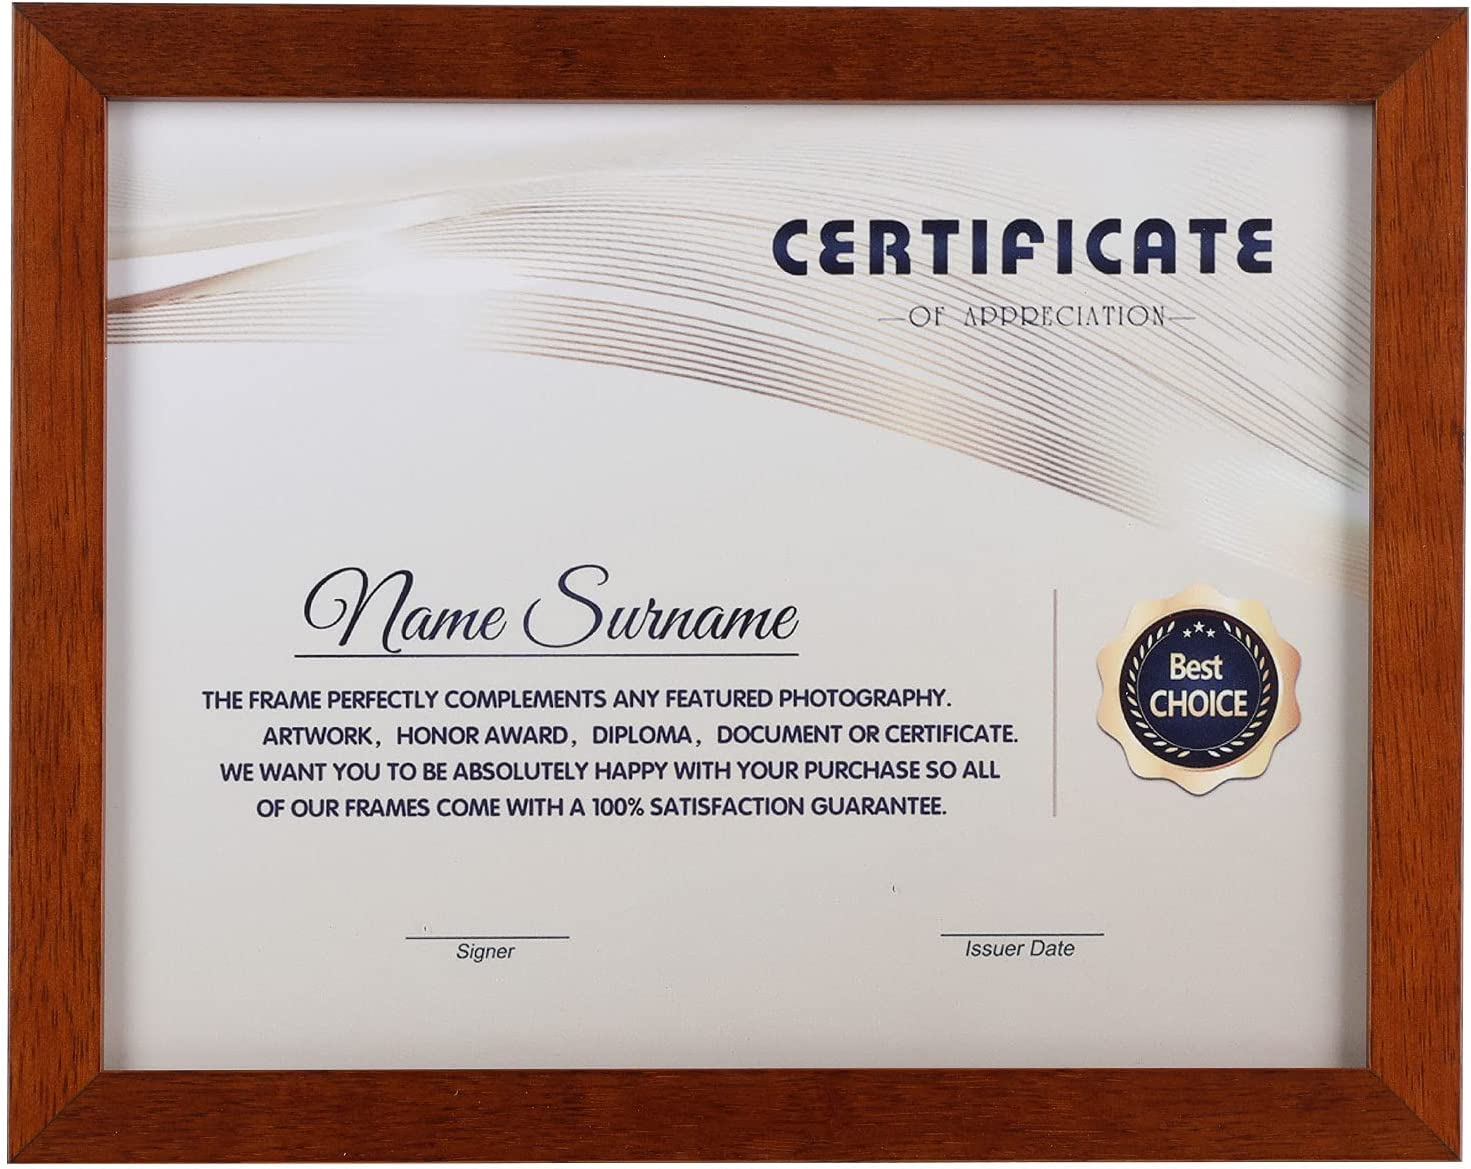 8.5 x11 Bachelor Diploma Solid Albuquerque Mall Non- Finally resale start Frame Certificate Photo Wood